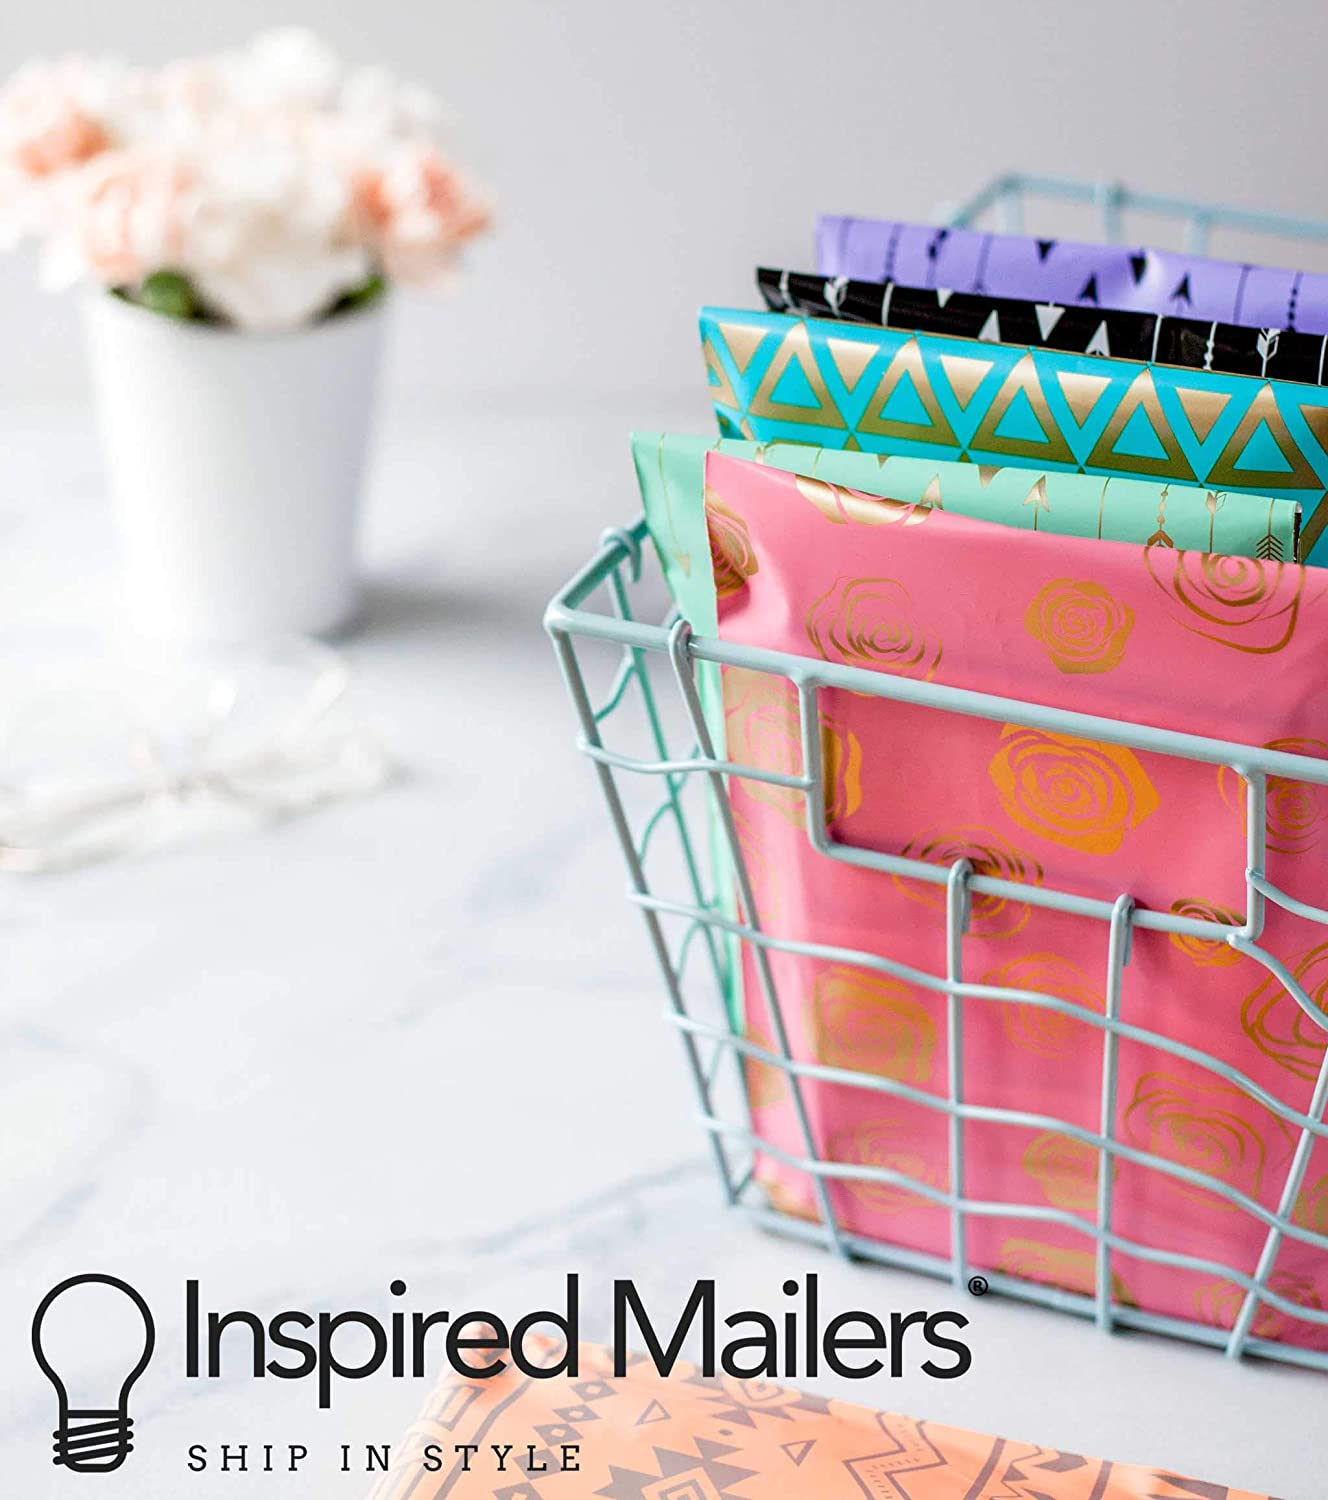 Choose Between 10x13 and 14.5x19 Sizes Inspired Mailers 100 Pack Red Buffalo Plaid 3.15mil Unpadded Shipping Bags Poly Mailers 10x13 10x13, 100 Pack